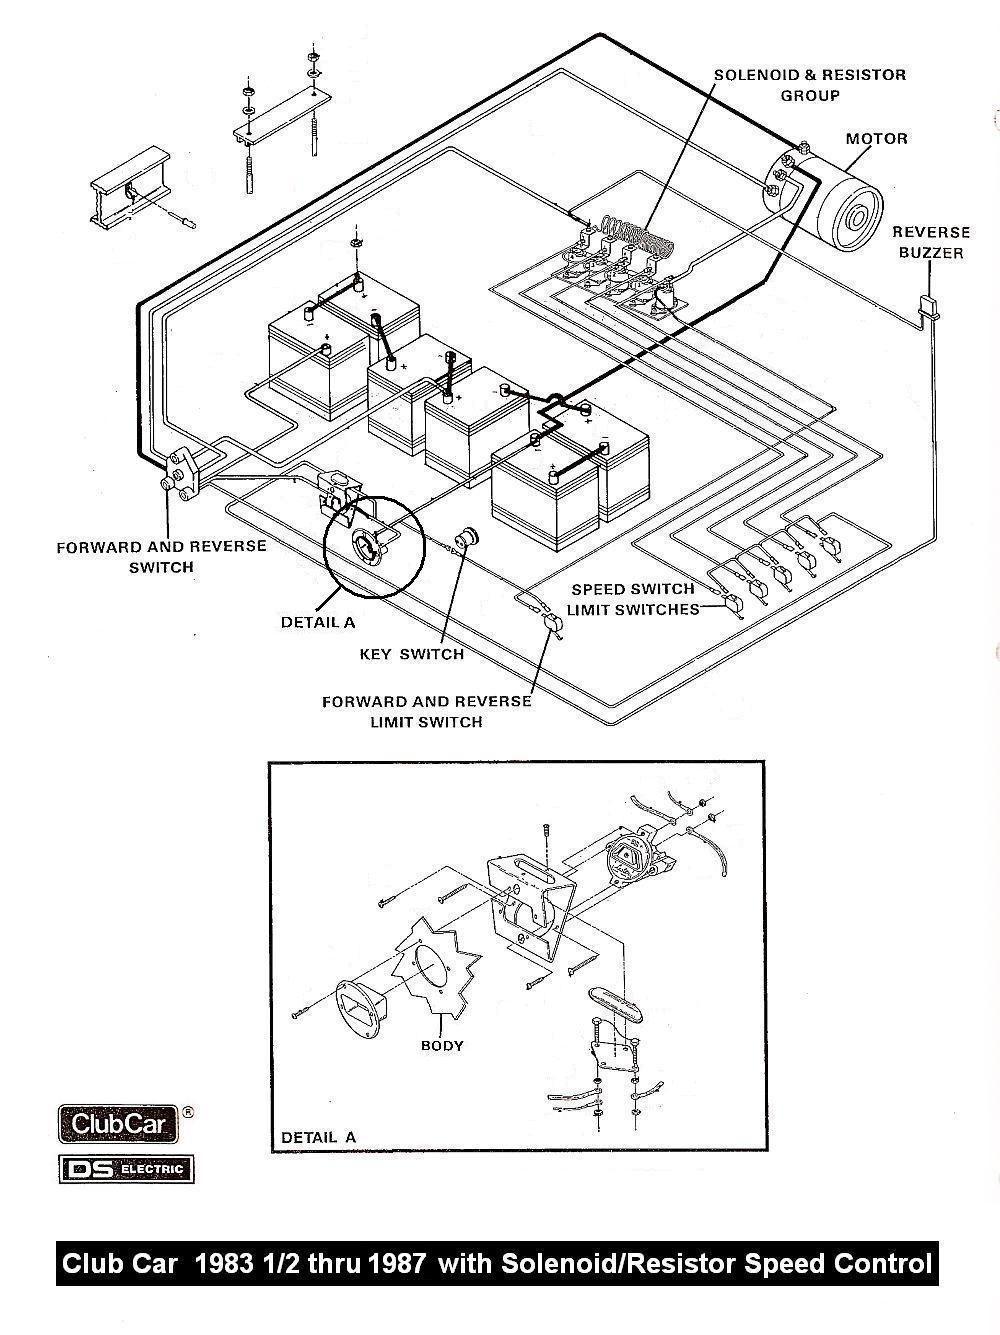 0e8d045370be7682b159825224221faa vintagegolfcartparts com *freezer & crock pot* pinterest club car golf cart 36 volt battery wiring diagram at gsmportal.co